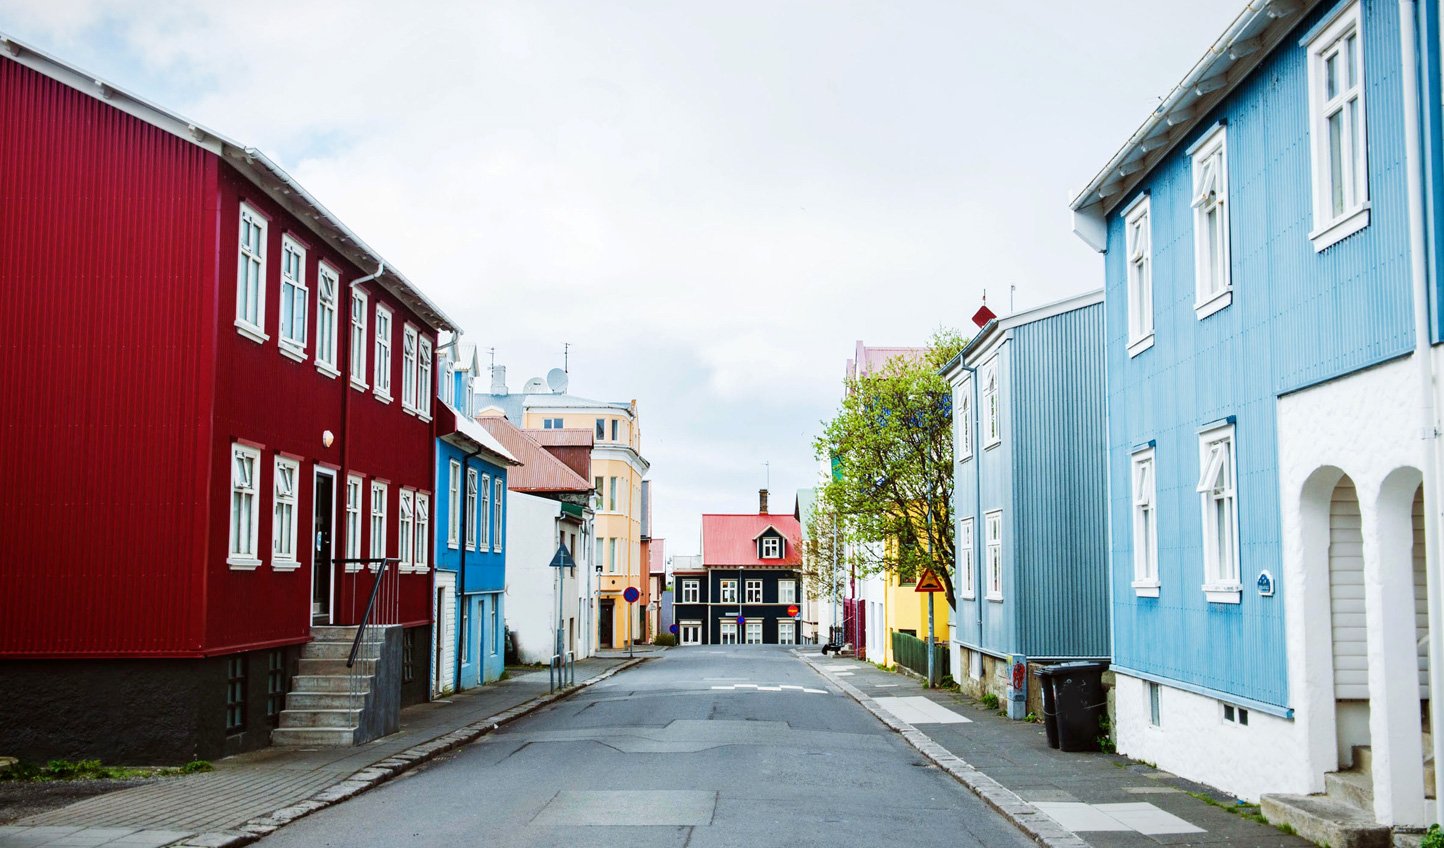 Take a stroll through the vibrant streets of Reykjavik